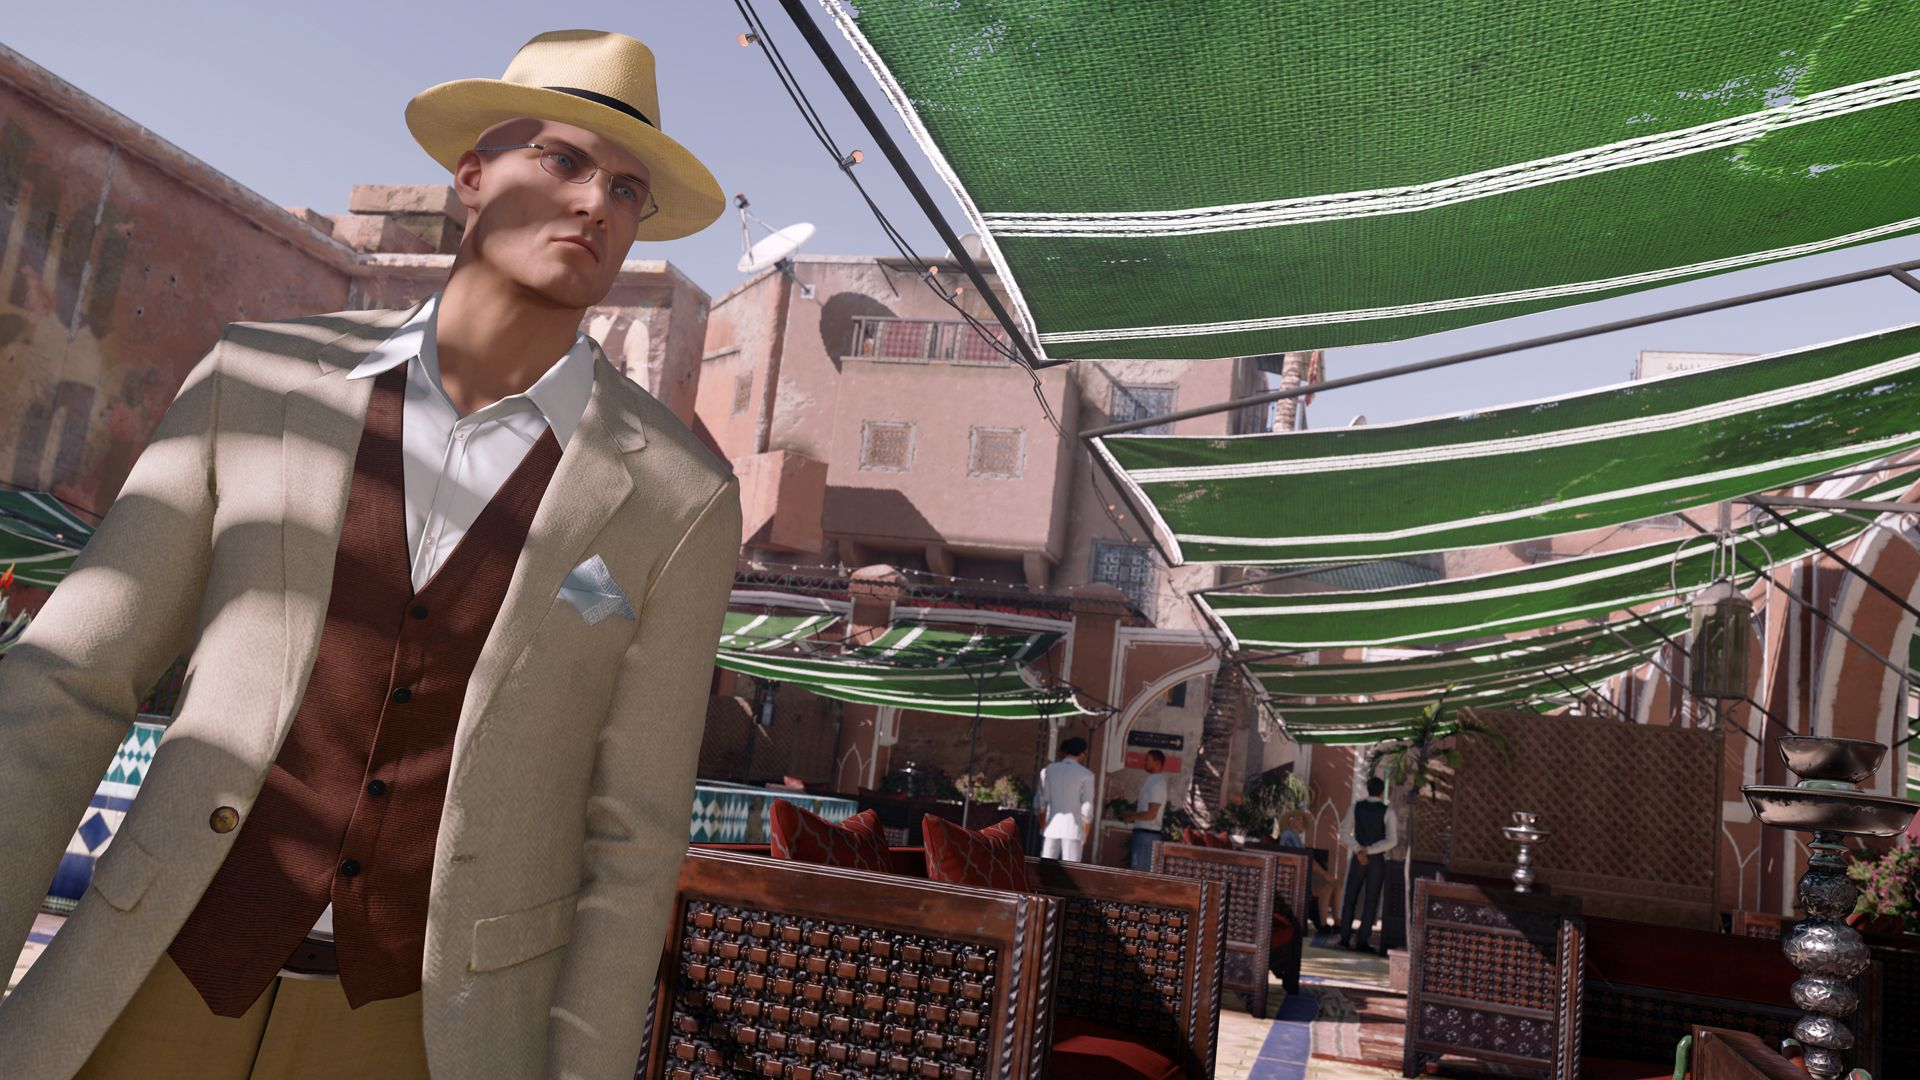 hitman_screenshot_marrakesh_markets_26_1464257195-05-2016